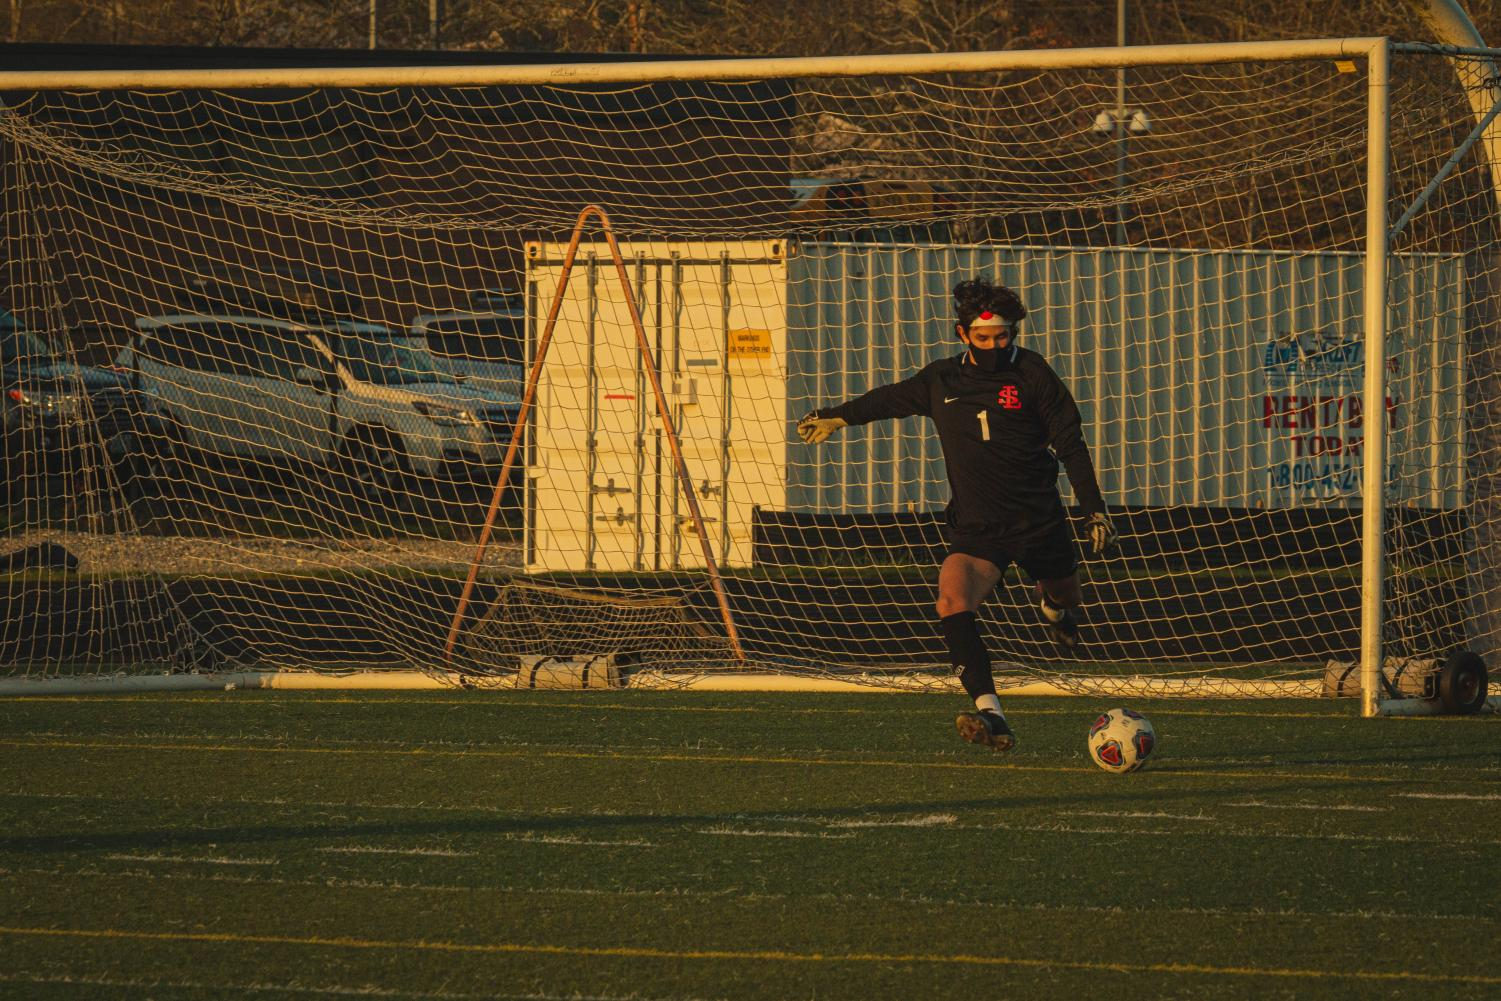 In+Last+Home+Game+of+the+Season%2C+Boys+Soccer+Faces+Off+Against+Central+Catholic